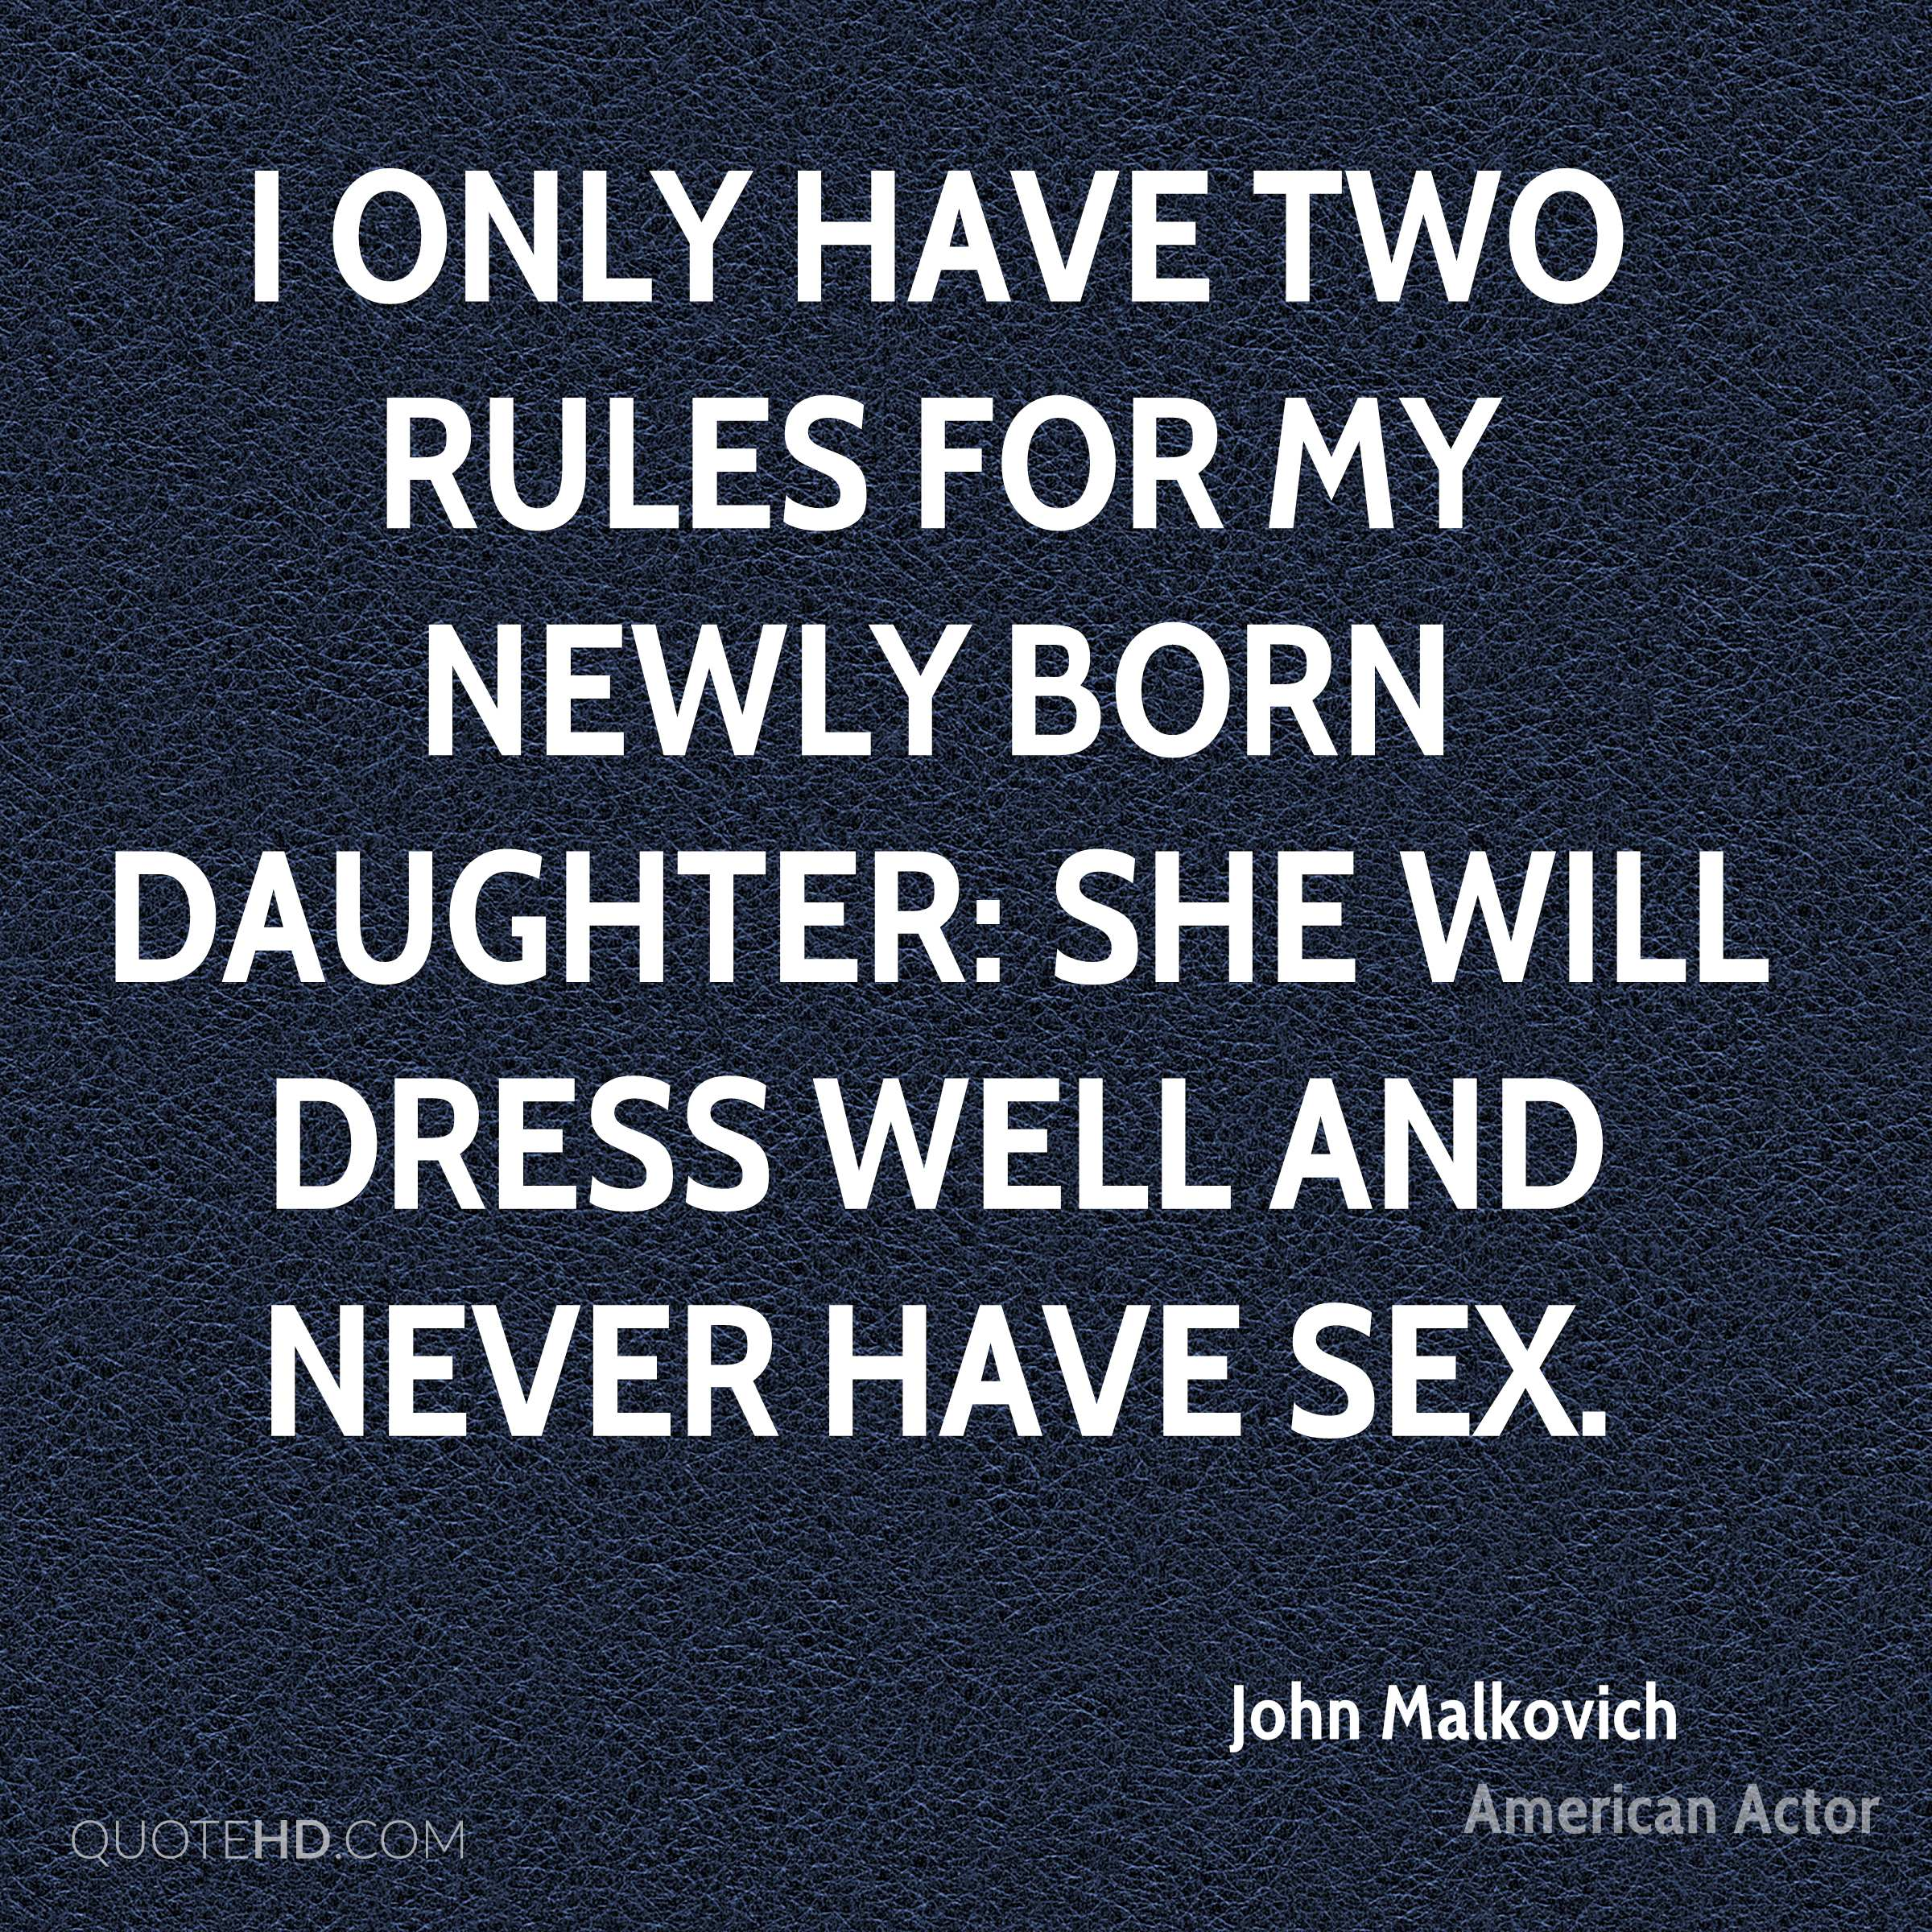 I only have two rules for my newly born daughter: she will dress well and never have sex.